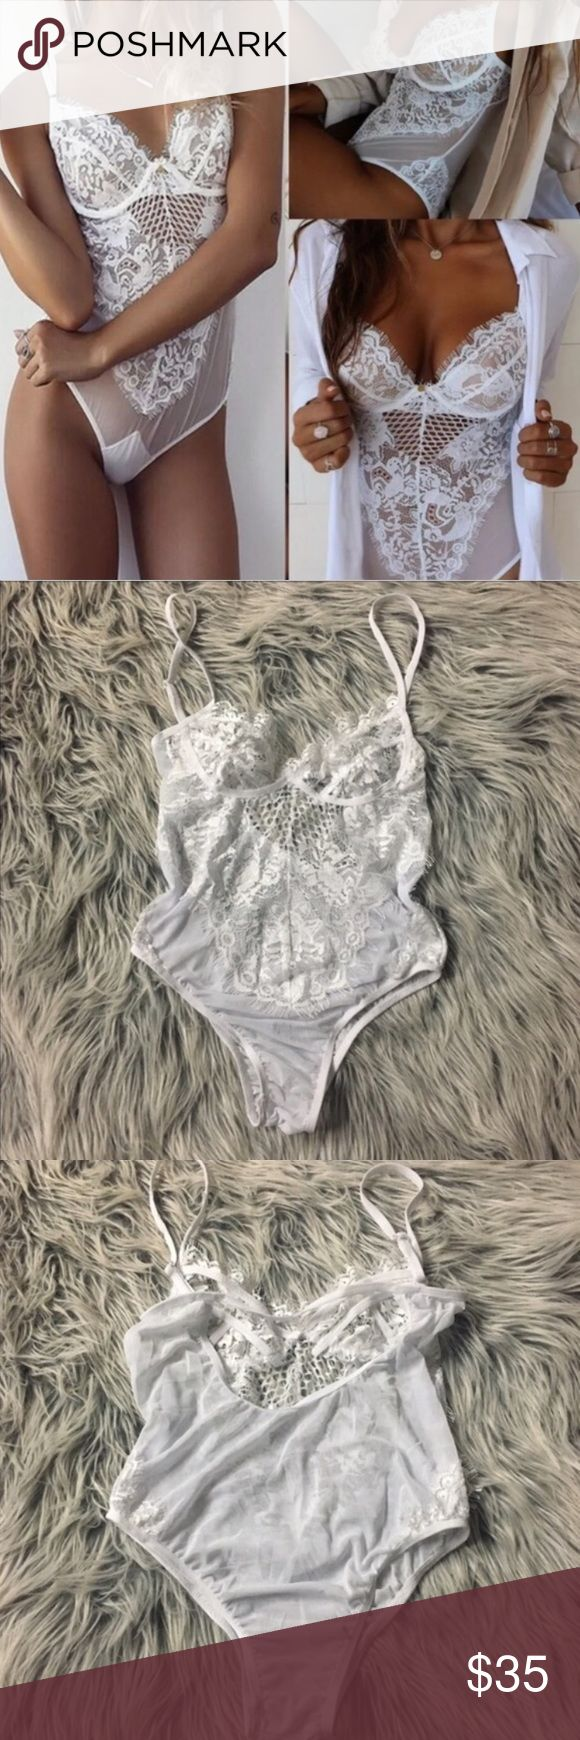 Sexy white lace teddy lingerie New, never worn. Sexy white lace teddy. Fits xs and s. Thank you for visiting my closet, please let me know if you have any questions. I offer great discounts on bundles  also available in black, see separate listing. lucy6mahon Intimates & Sleepwear